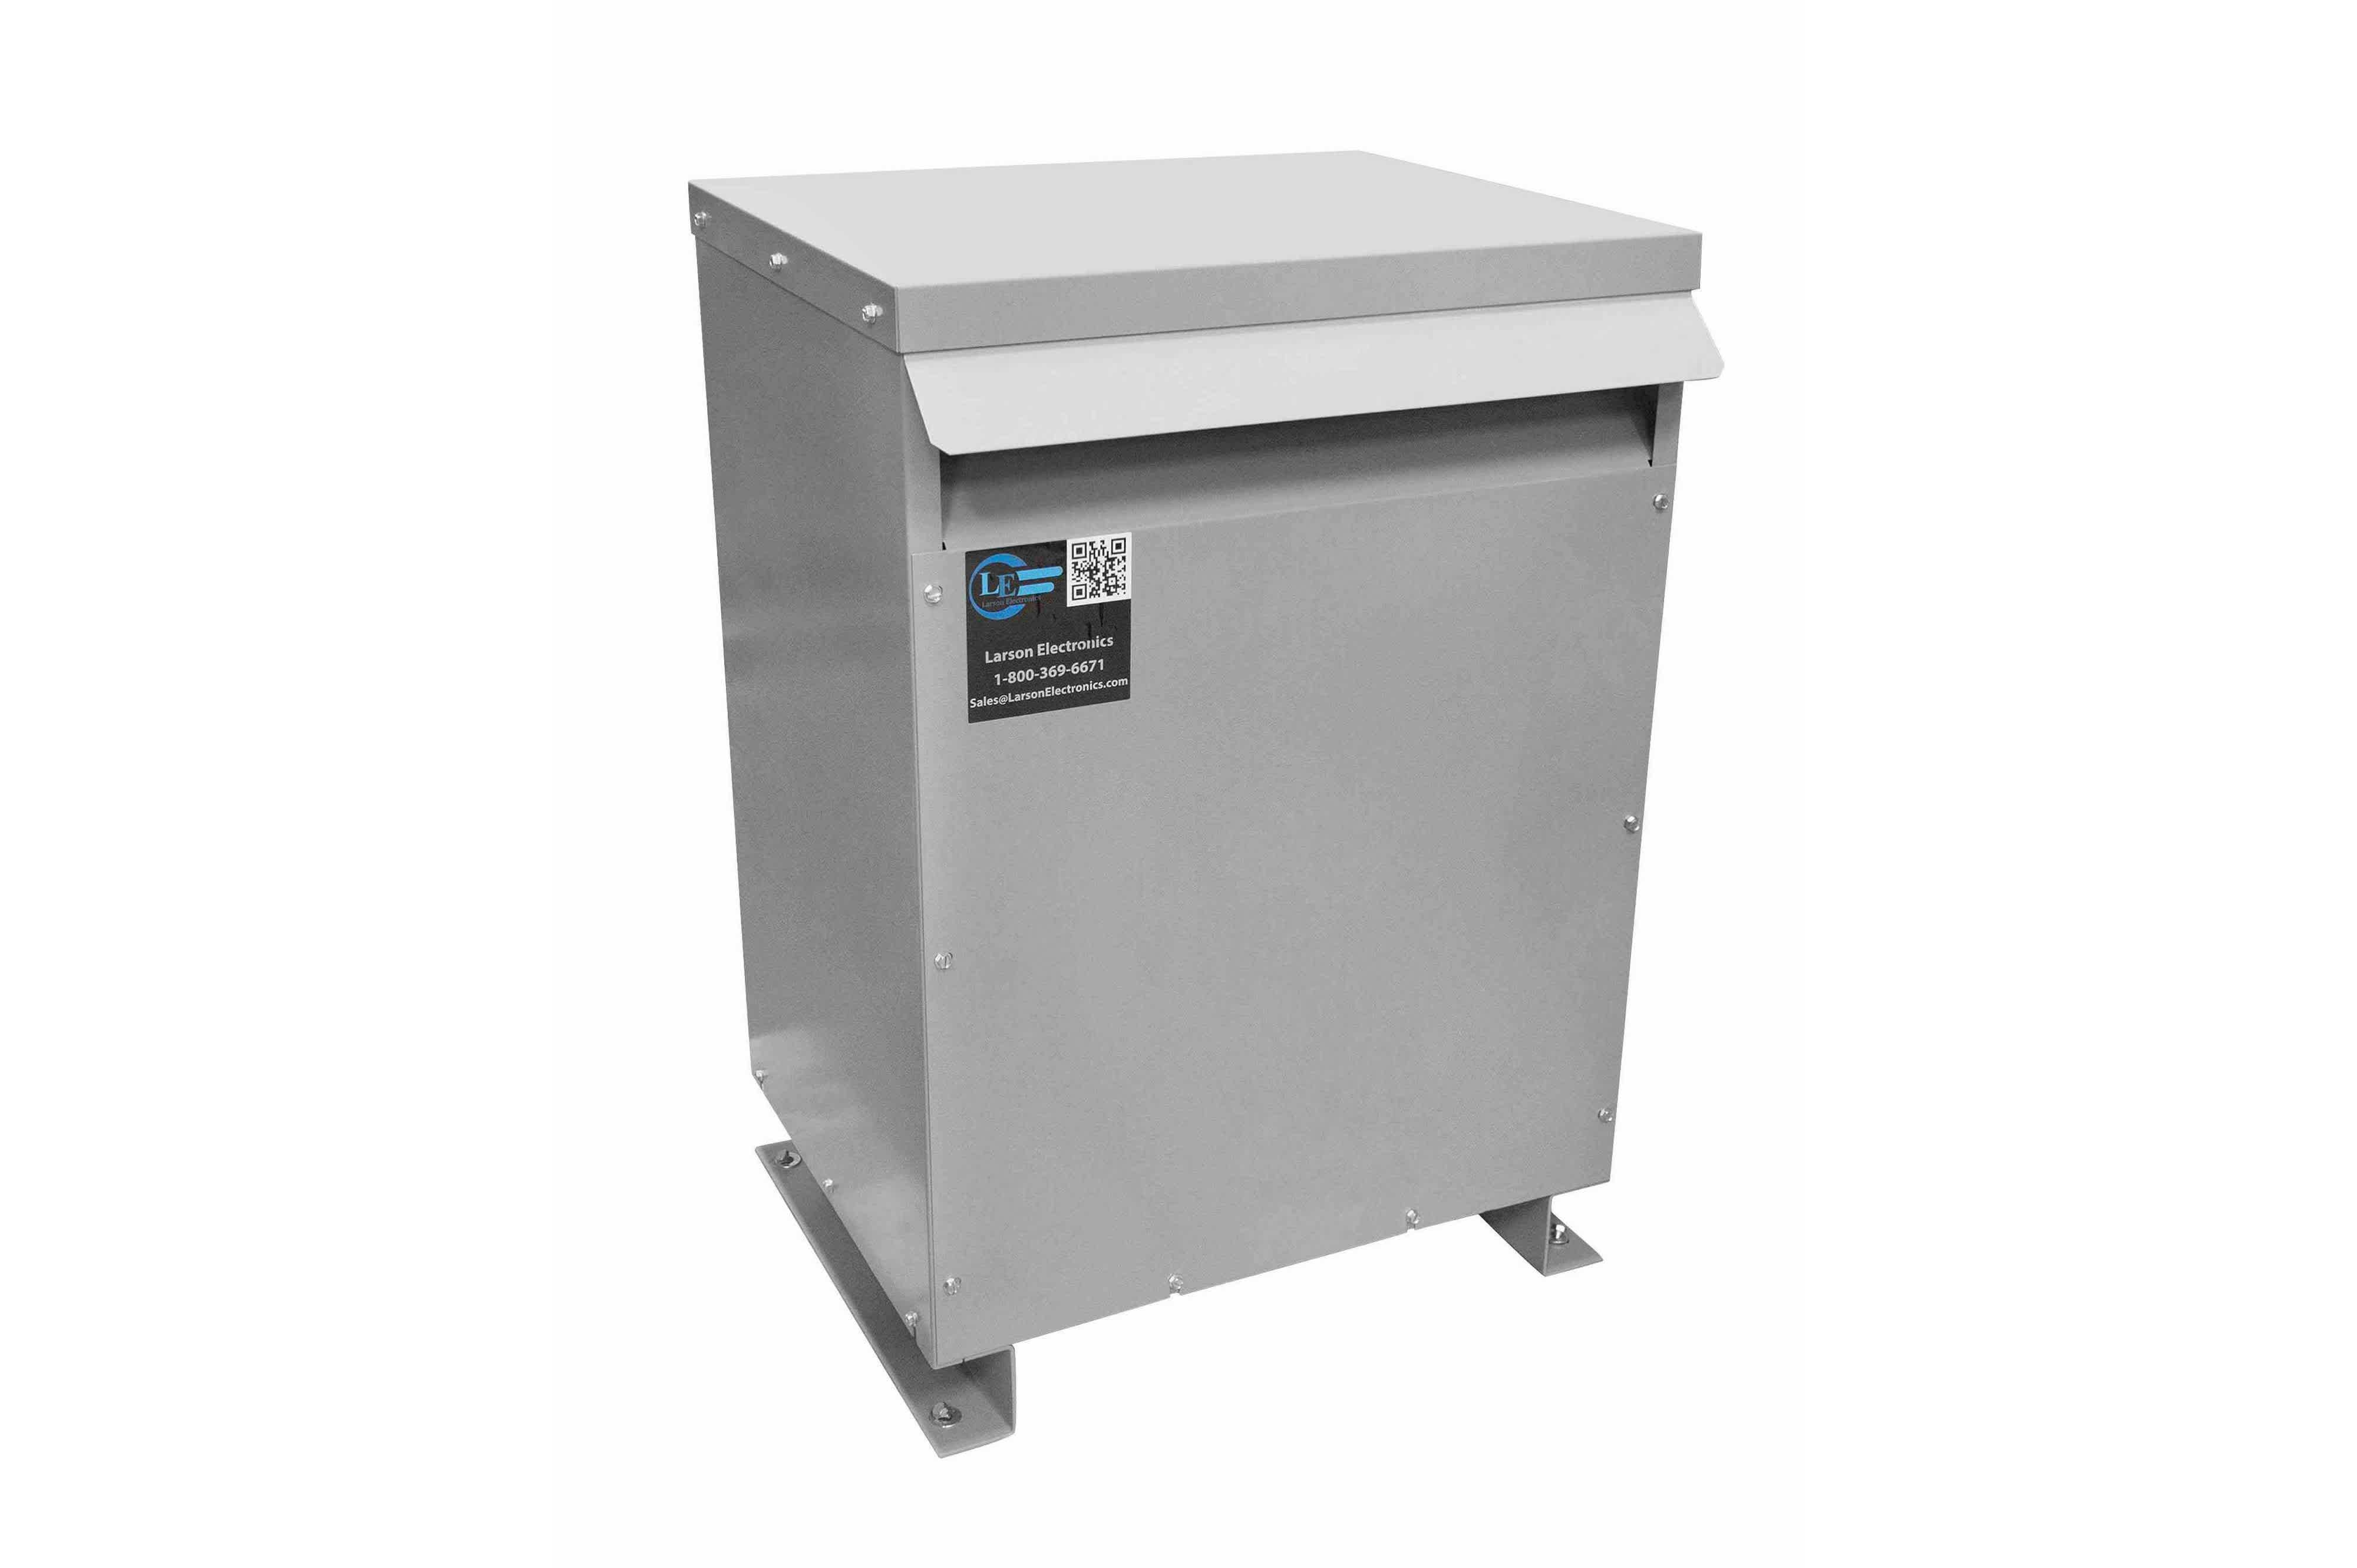 400 kVA 3PH Isolation Transformer, 208V Delta Primary, 240 Delta Secondary, N3R, Ventilated, 60 Hz